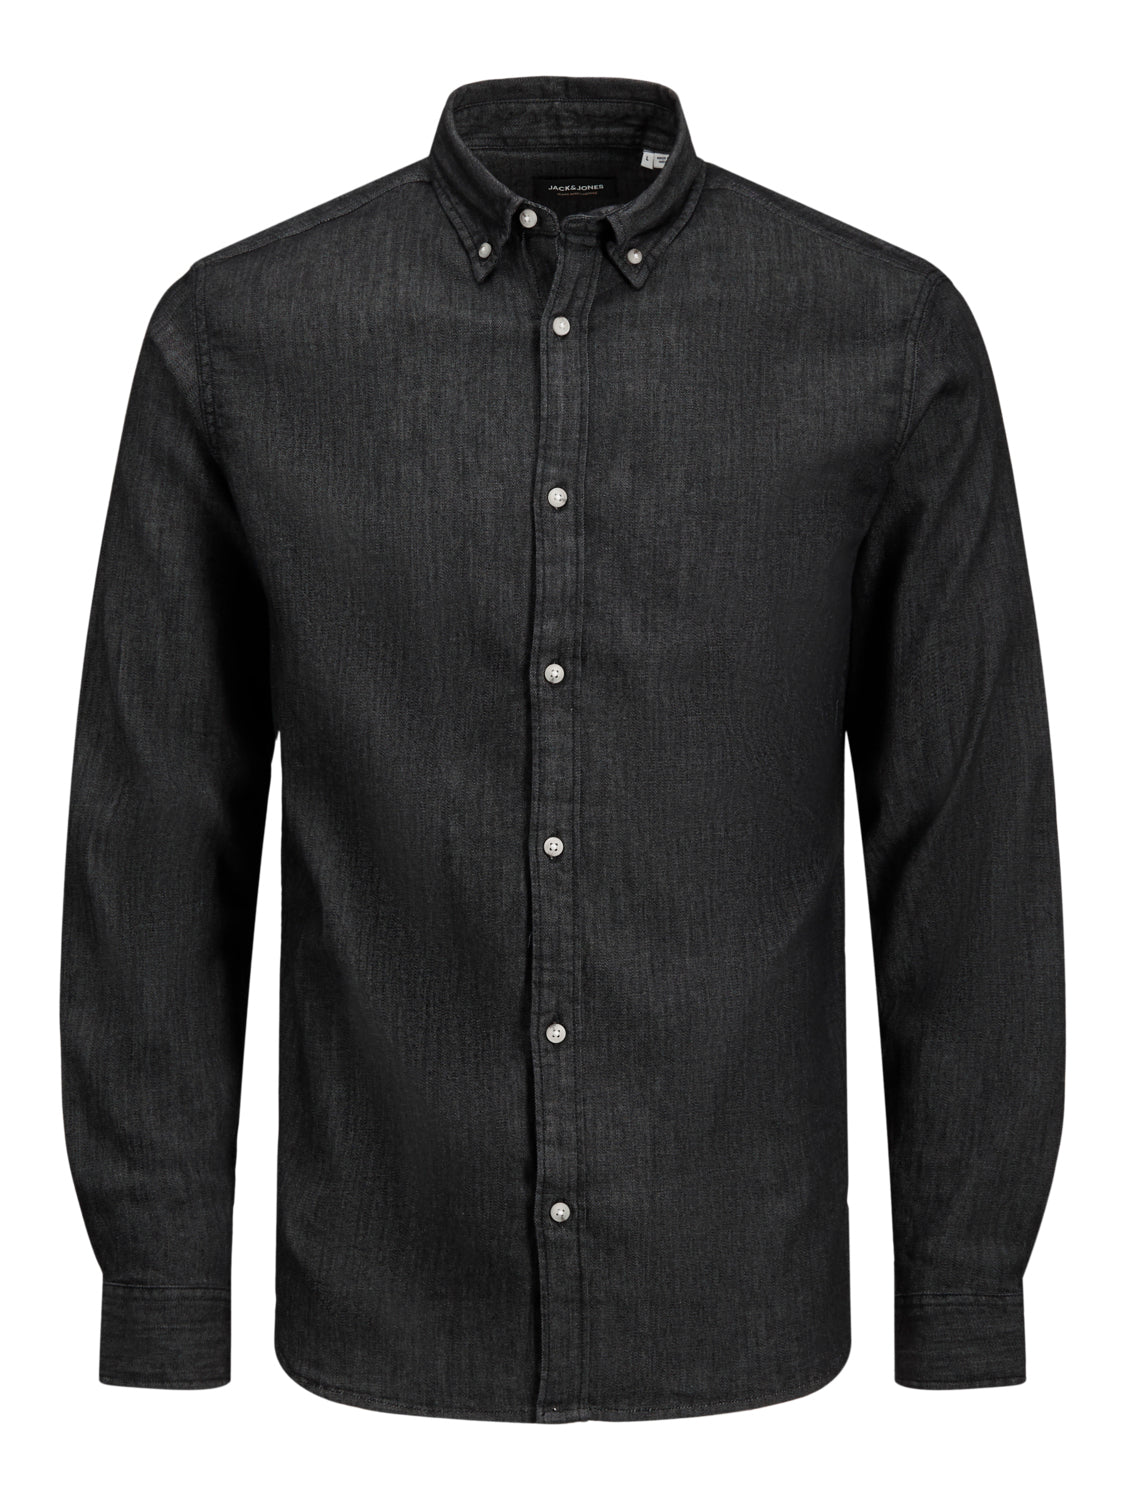 Jack and Jones Herren Jeanshemd Schwarz